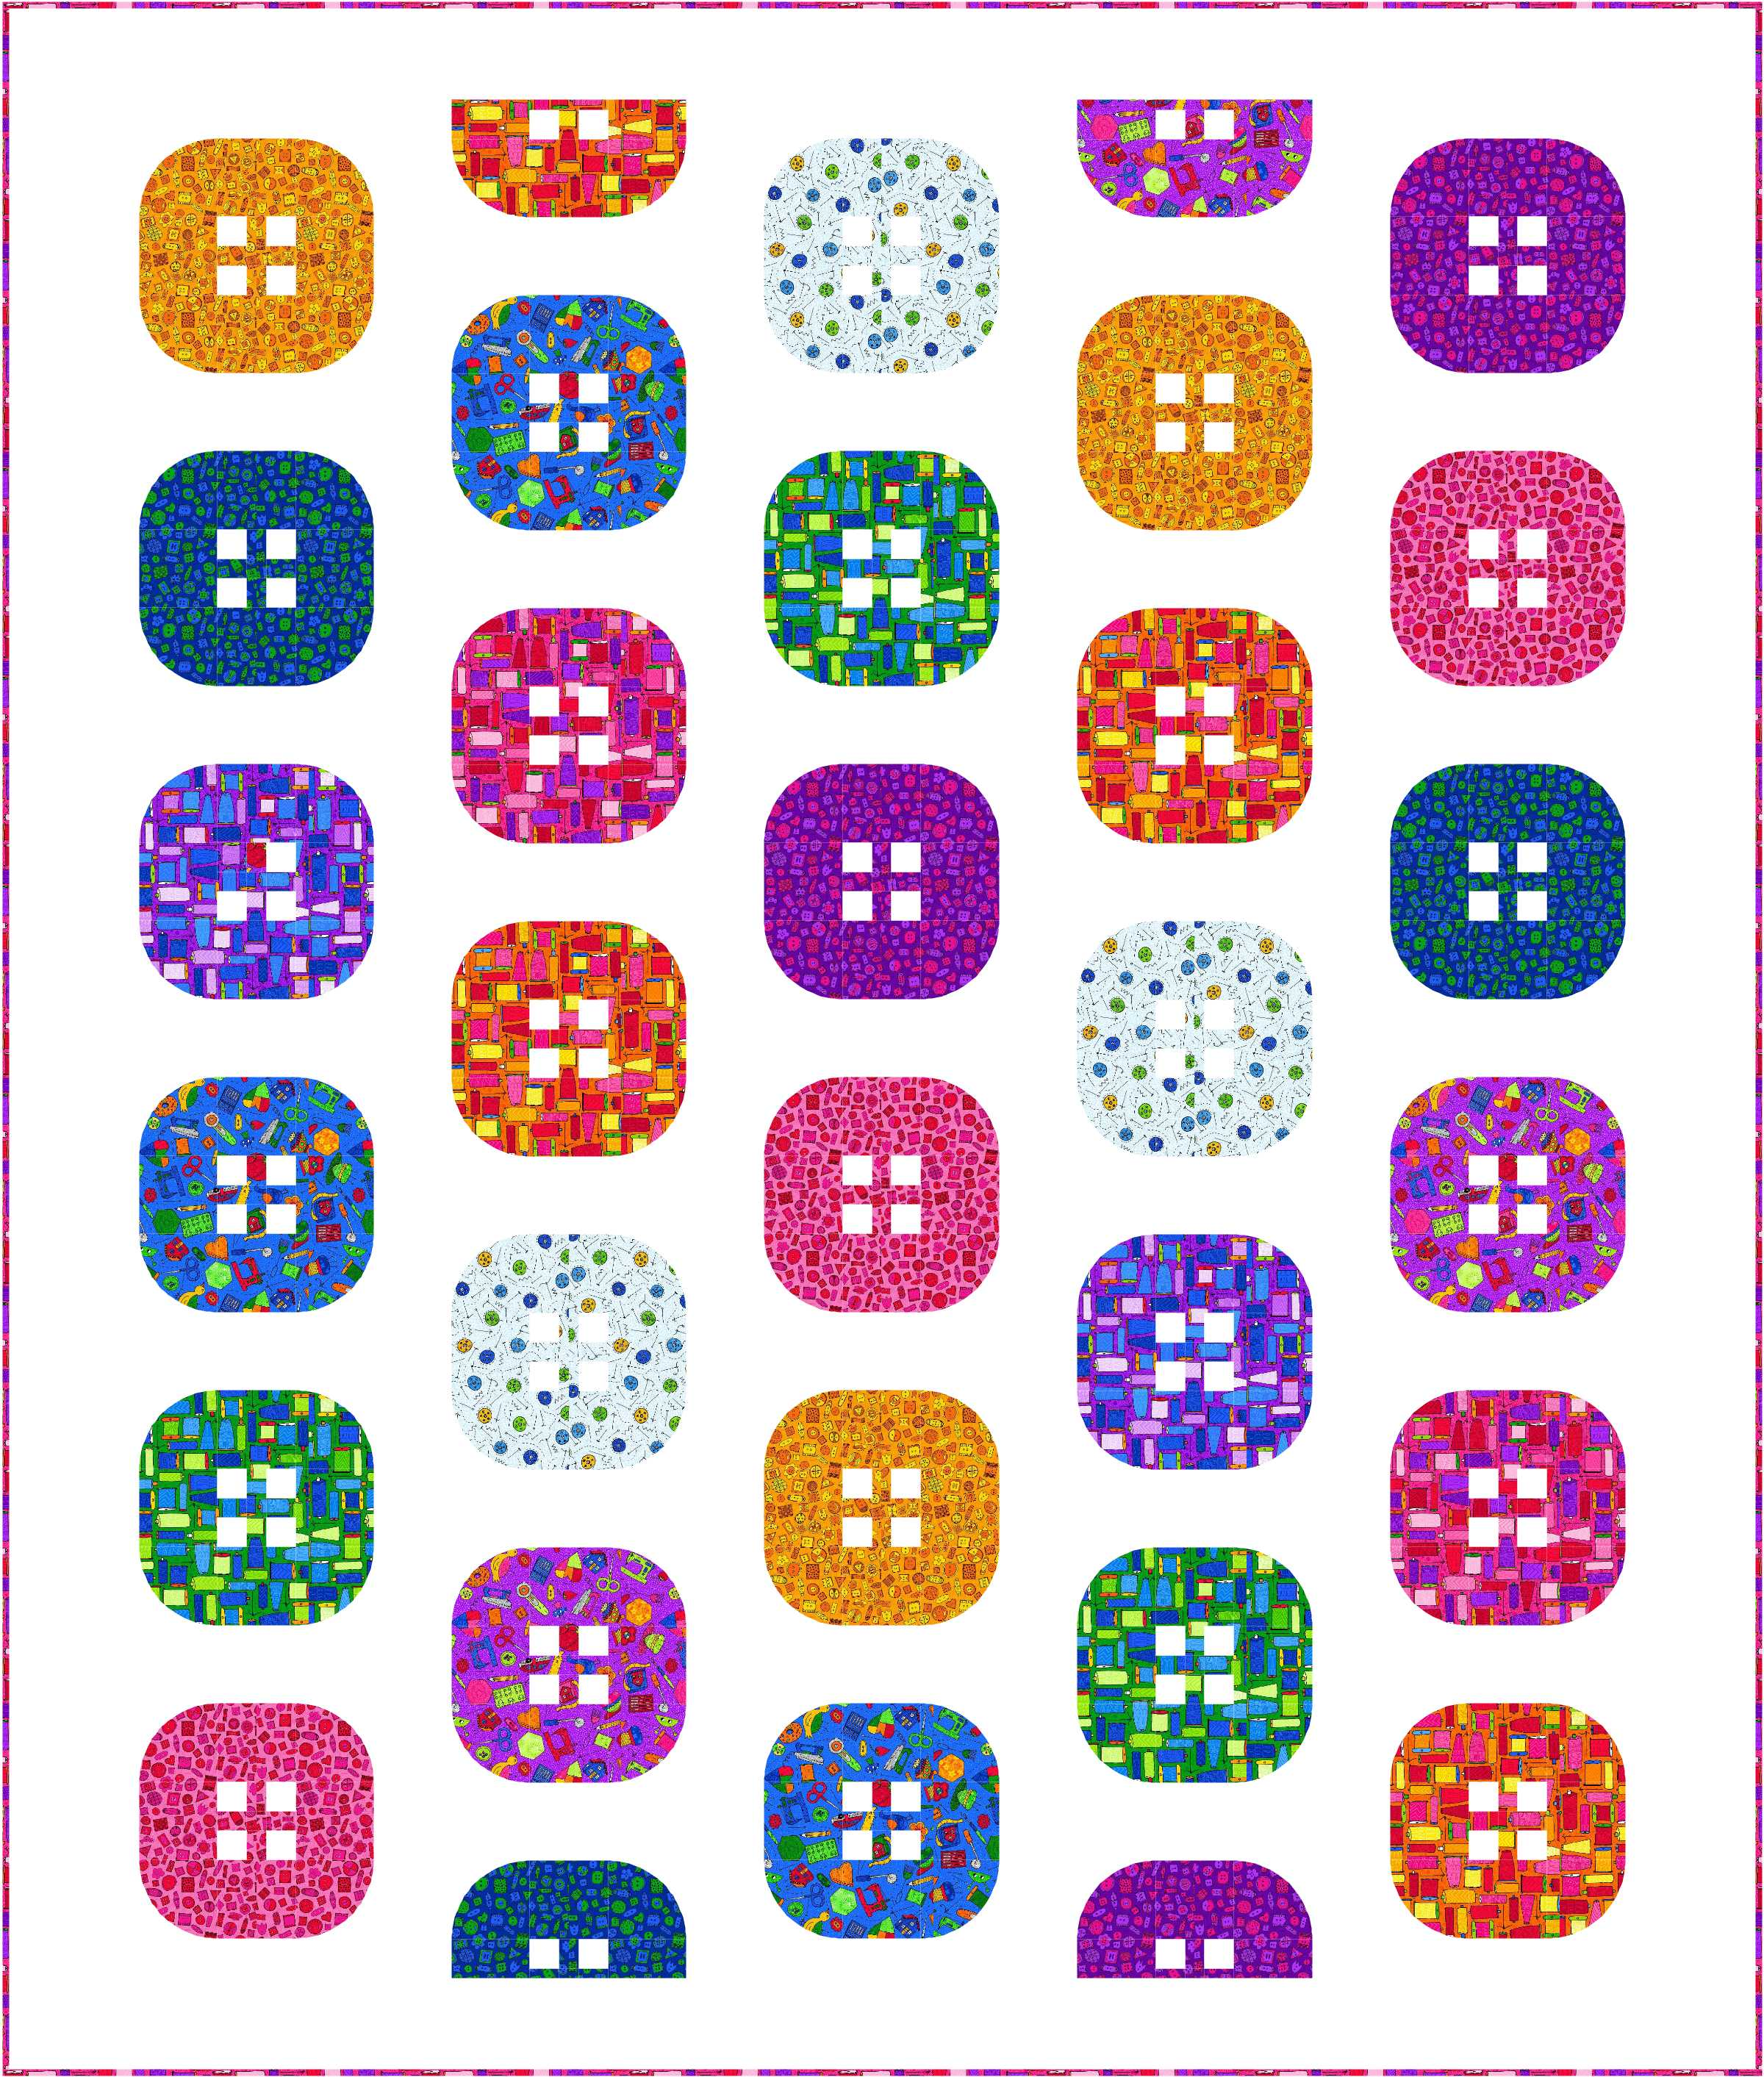 4_New Cute as a Button Quilt by Wendy Sheppard 67 x 79.JPG